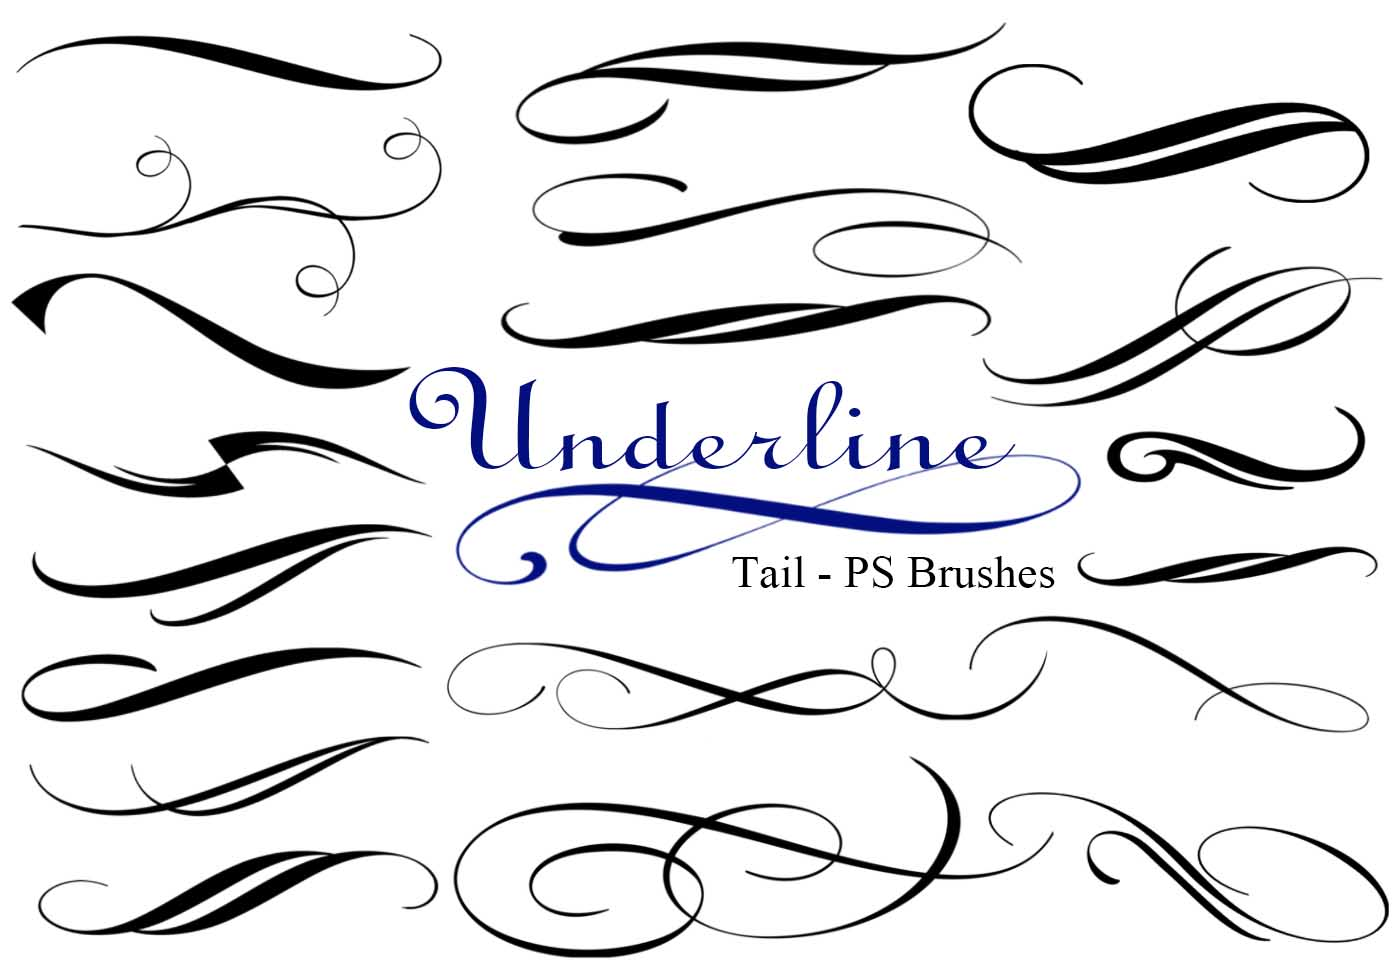 Underline tail ps brushes abr vol free photoshop